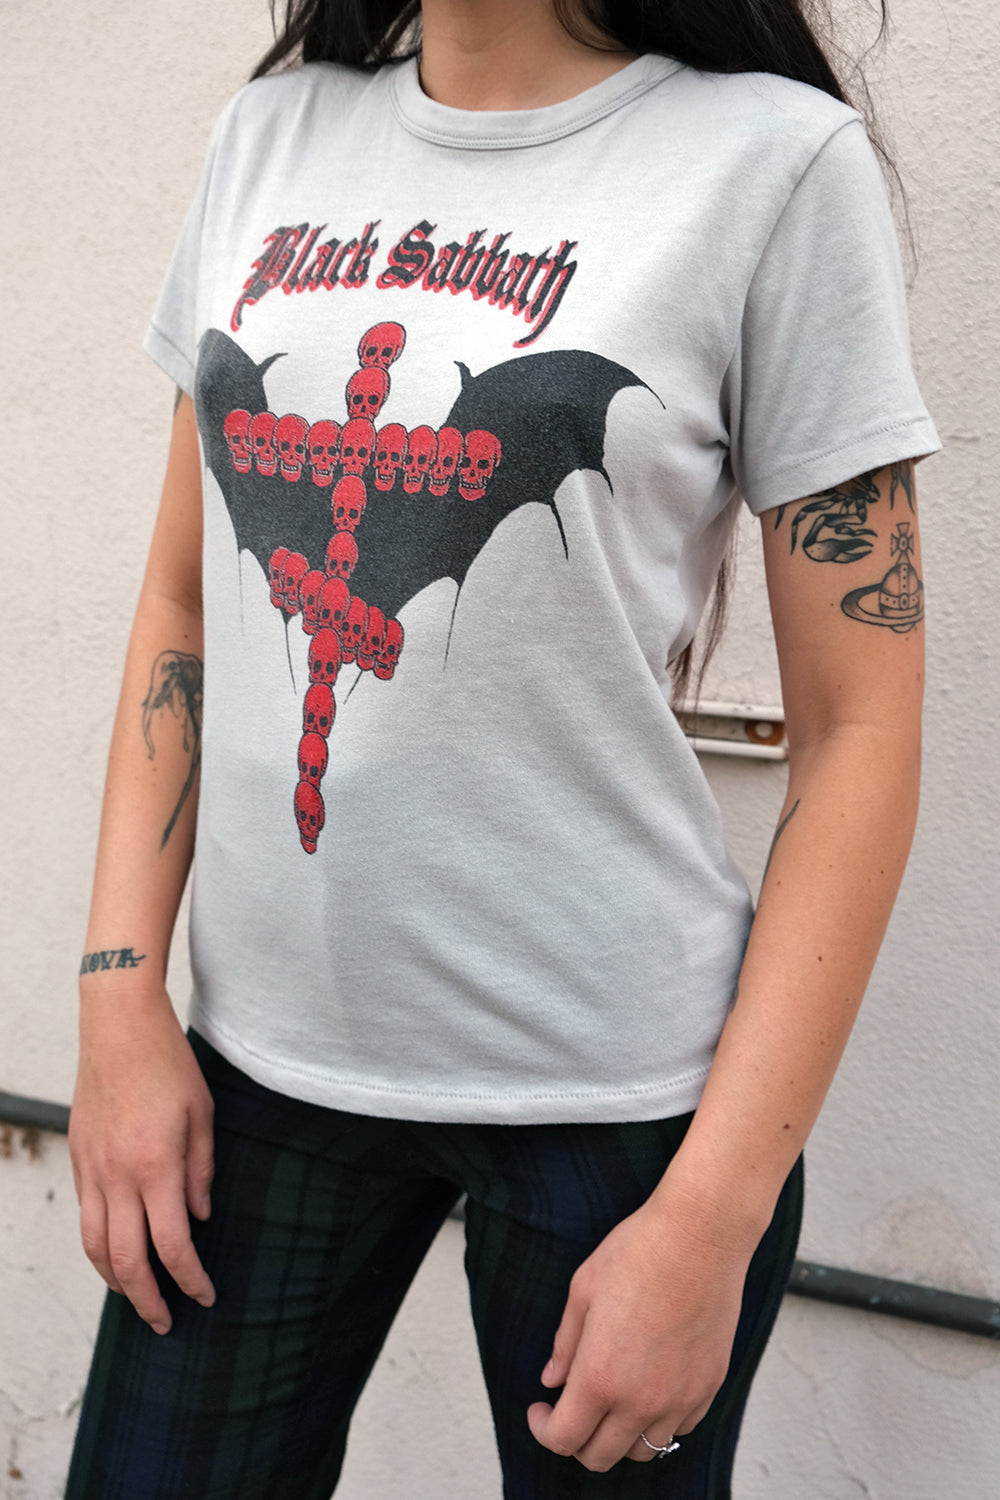 Black Sabbath Silver/Red Unisex 50/50 Tee by Gimme Danger | Made To Order